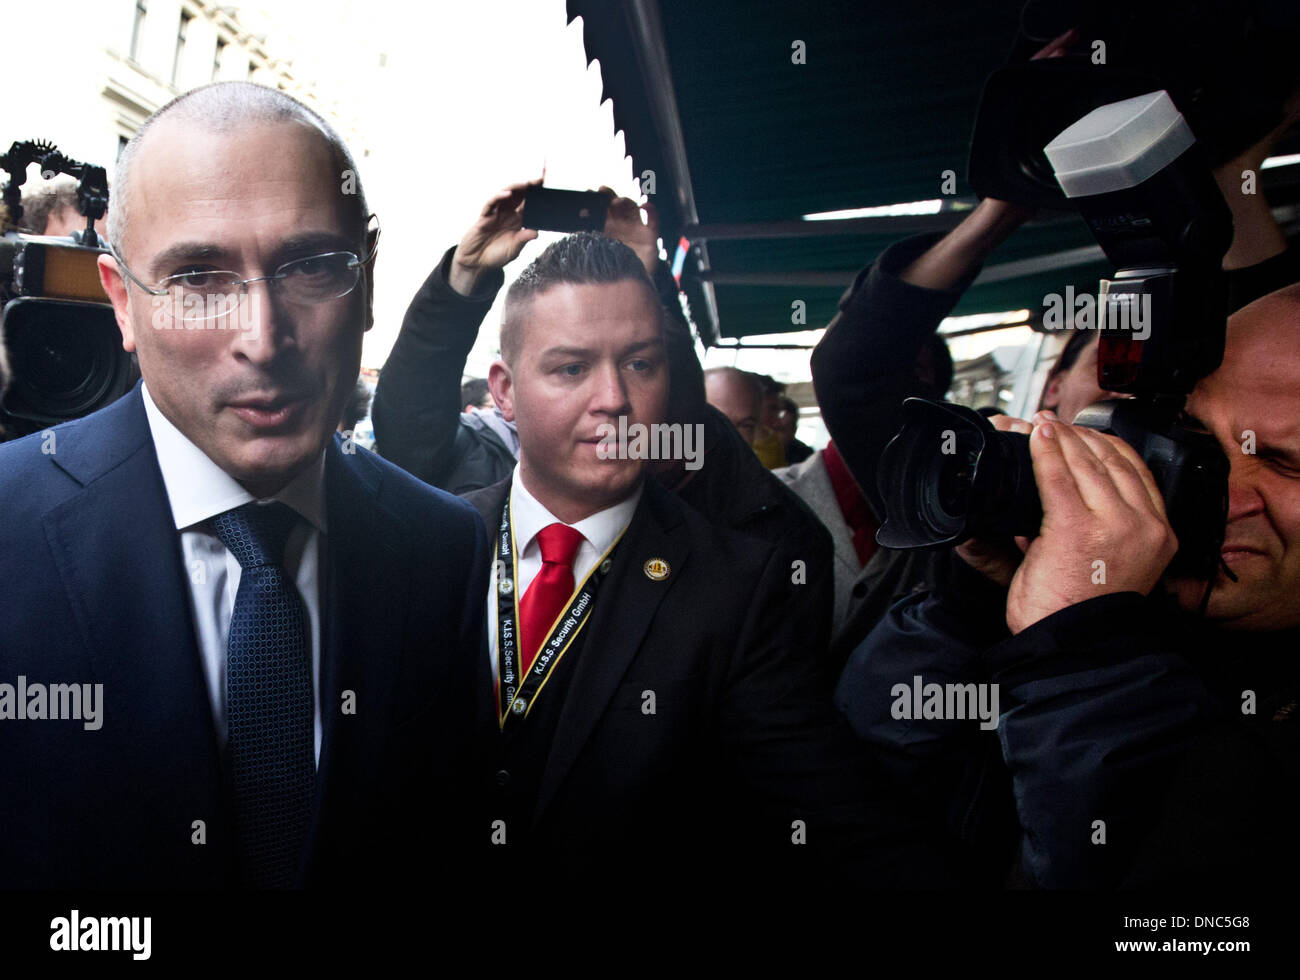 Berlin, Germany. 22nd Dec, 2013. Russian former oil tycoon Mikhail Khodorkovsky arrives to hold a press conference at the Berlin Wall Museum, in Berlin, Germany, 22 December 2013 to discuss his future plans, two days after he received a pardon from prison from Russian President Vladimir Putin. Khodorkovsky, 50, who was once the richest man in Russia and spent 10 years in jail after being convicted of tax evasion and embezzlement, flew to Berlin on 20 December 2013. He has been given a one-year visa by Germany. Photo: Kay Nietfeld/dpa/Alamy Live News - Stock Image